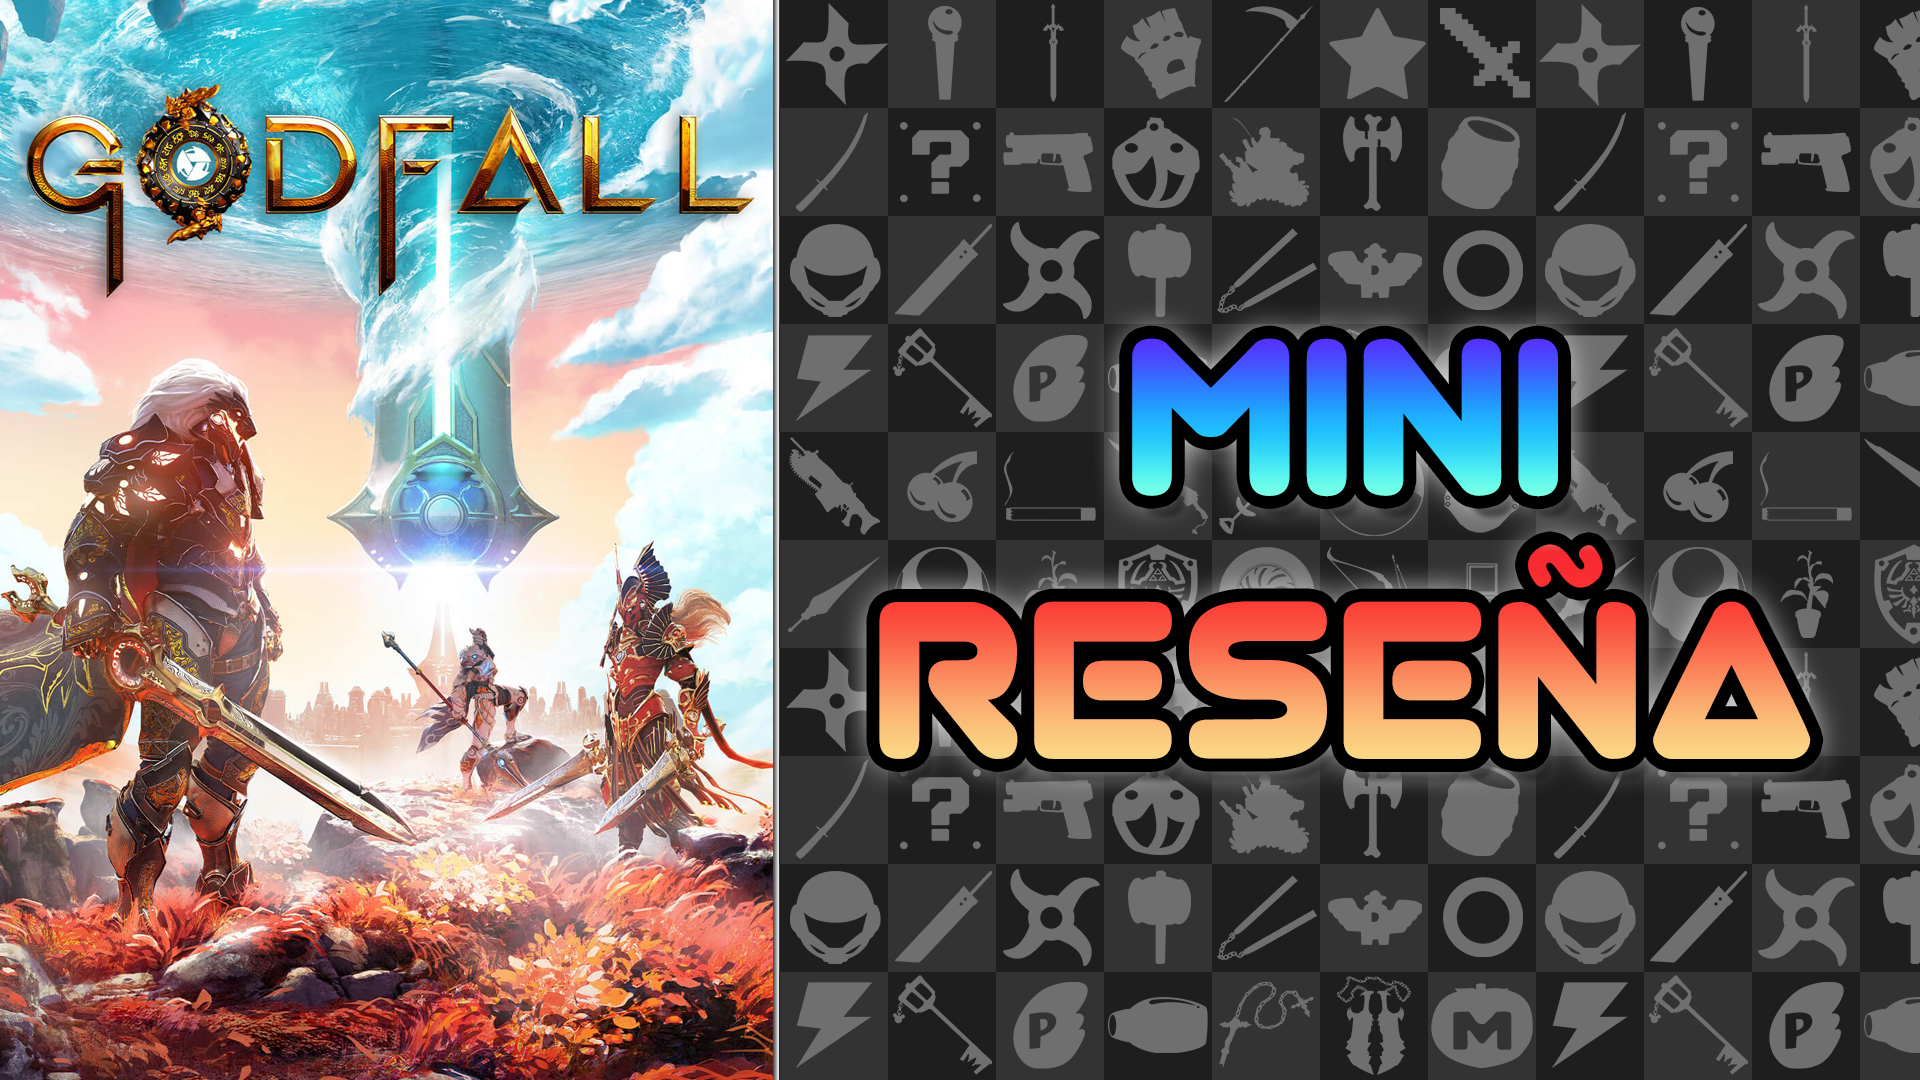 Mini Reseña Godfall